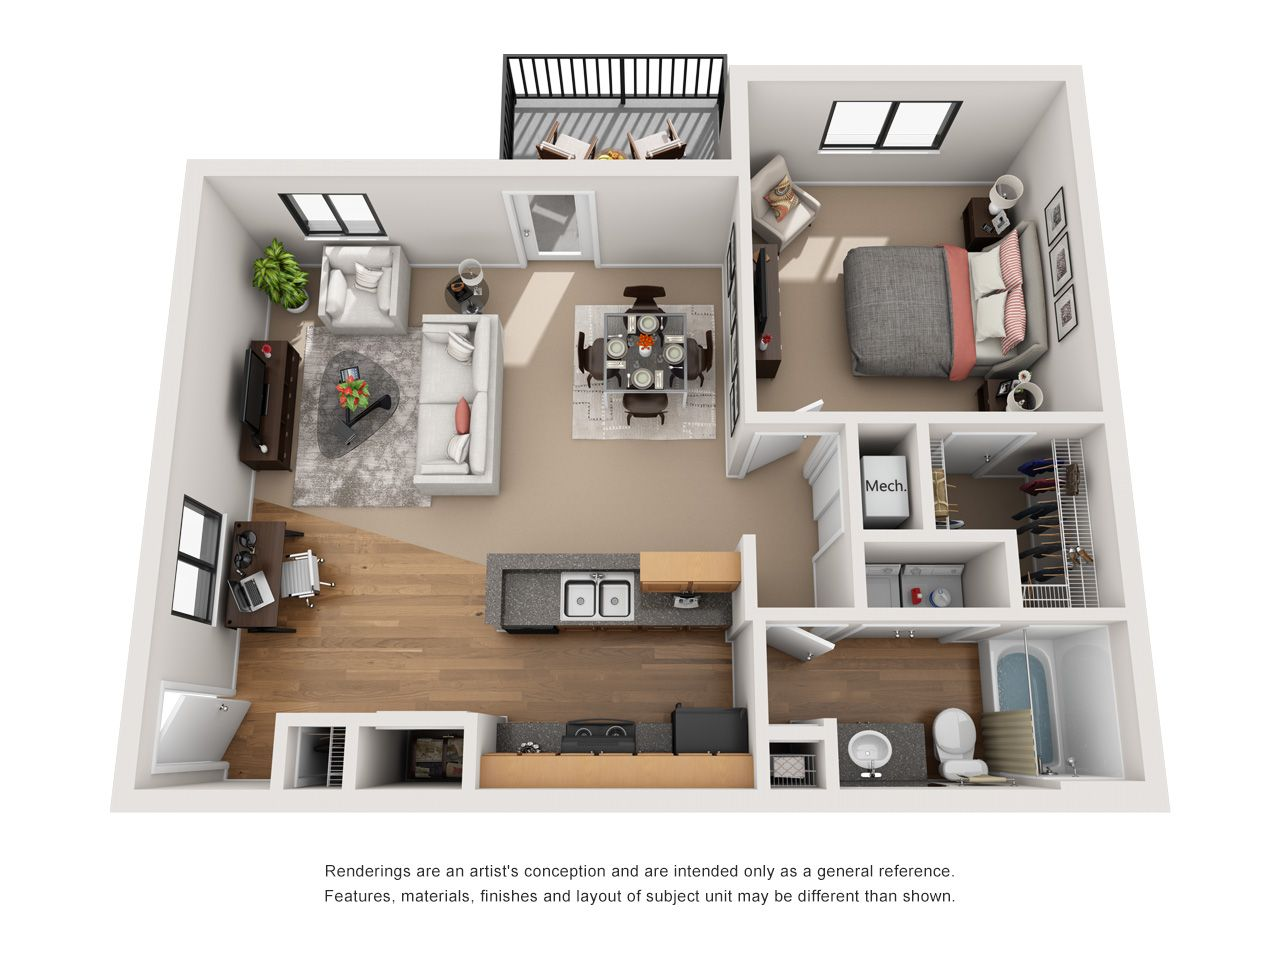 Pet Friendly Apartments In Indianapolis Indiana For Rent Indianapolis Indiana Apartment Stead Sims House Design Apartment Layout One Bedroom House Plans